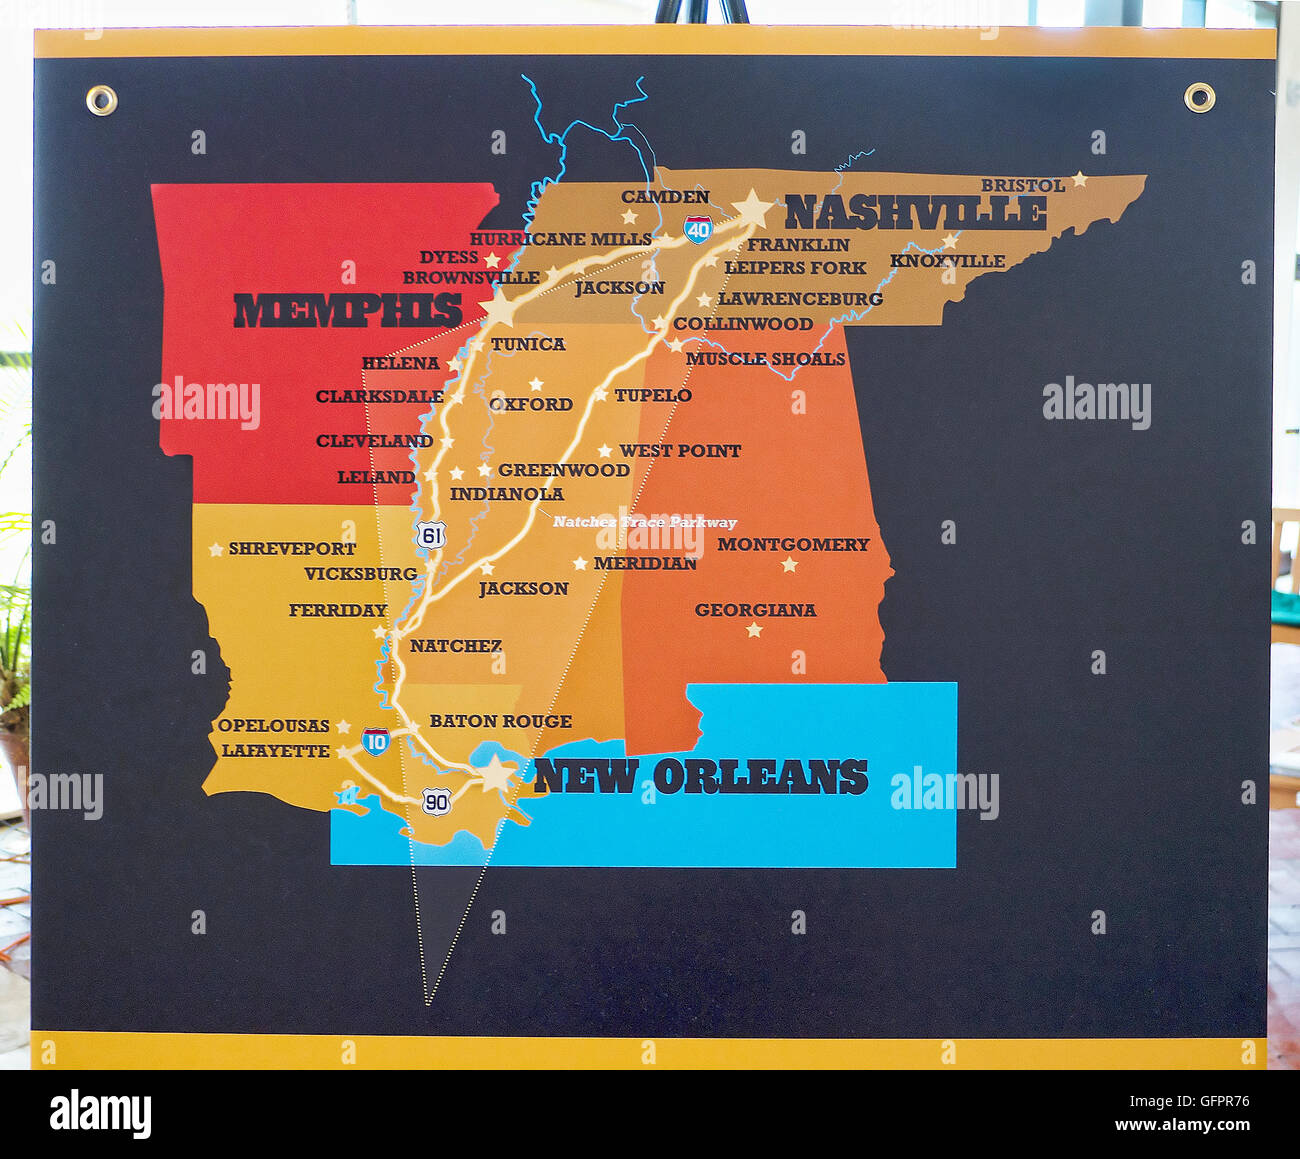 Map of the Deep South States in Memphis Tennessee USA Stock Photo